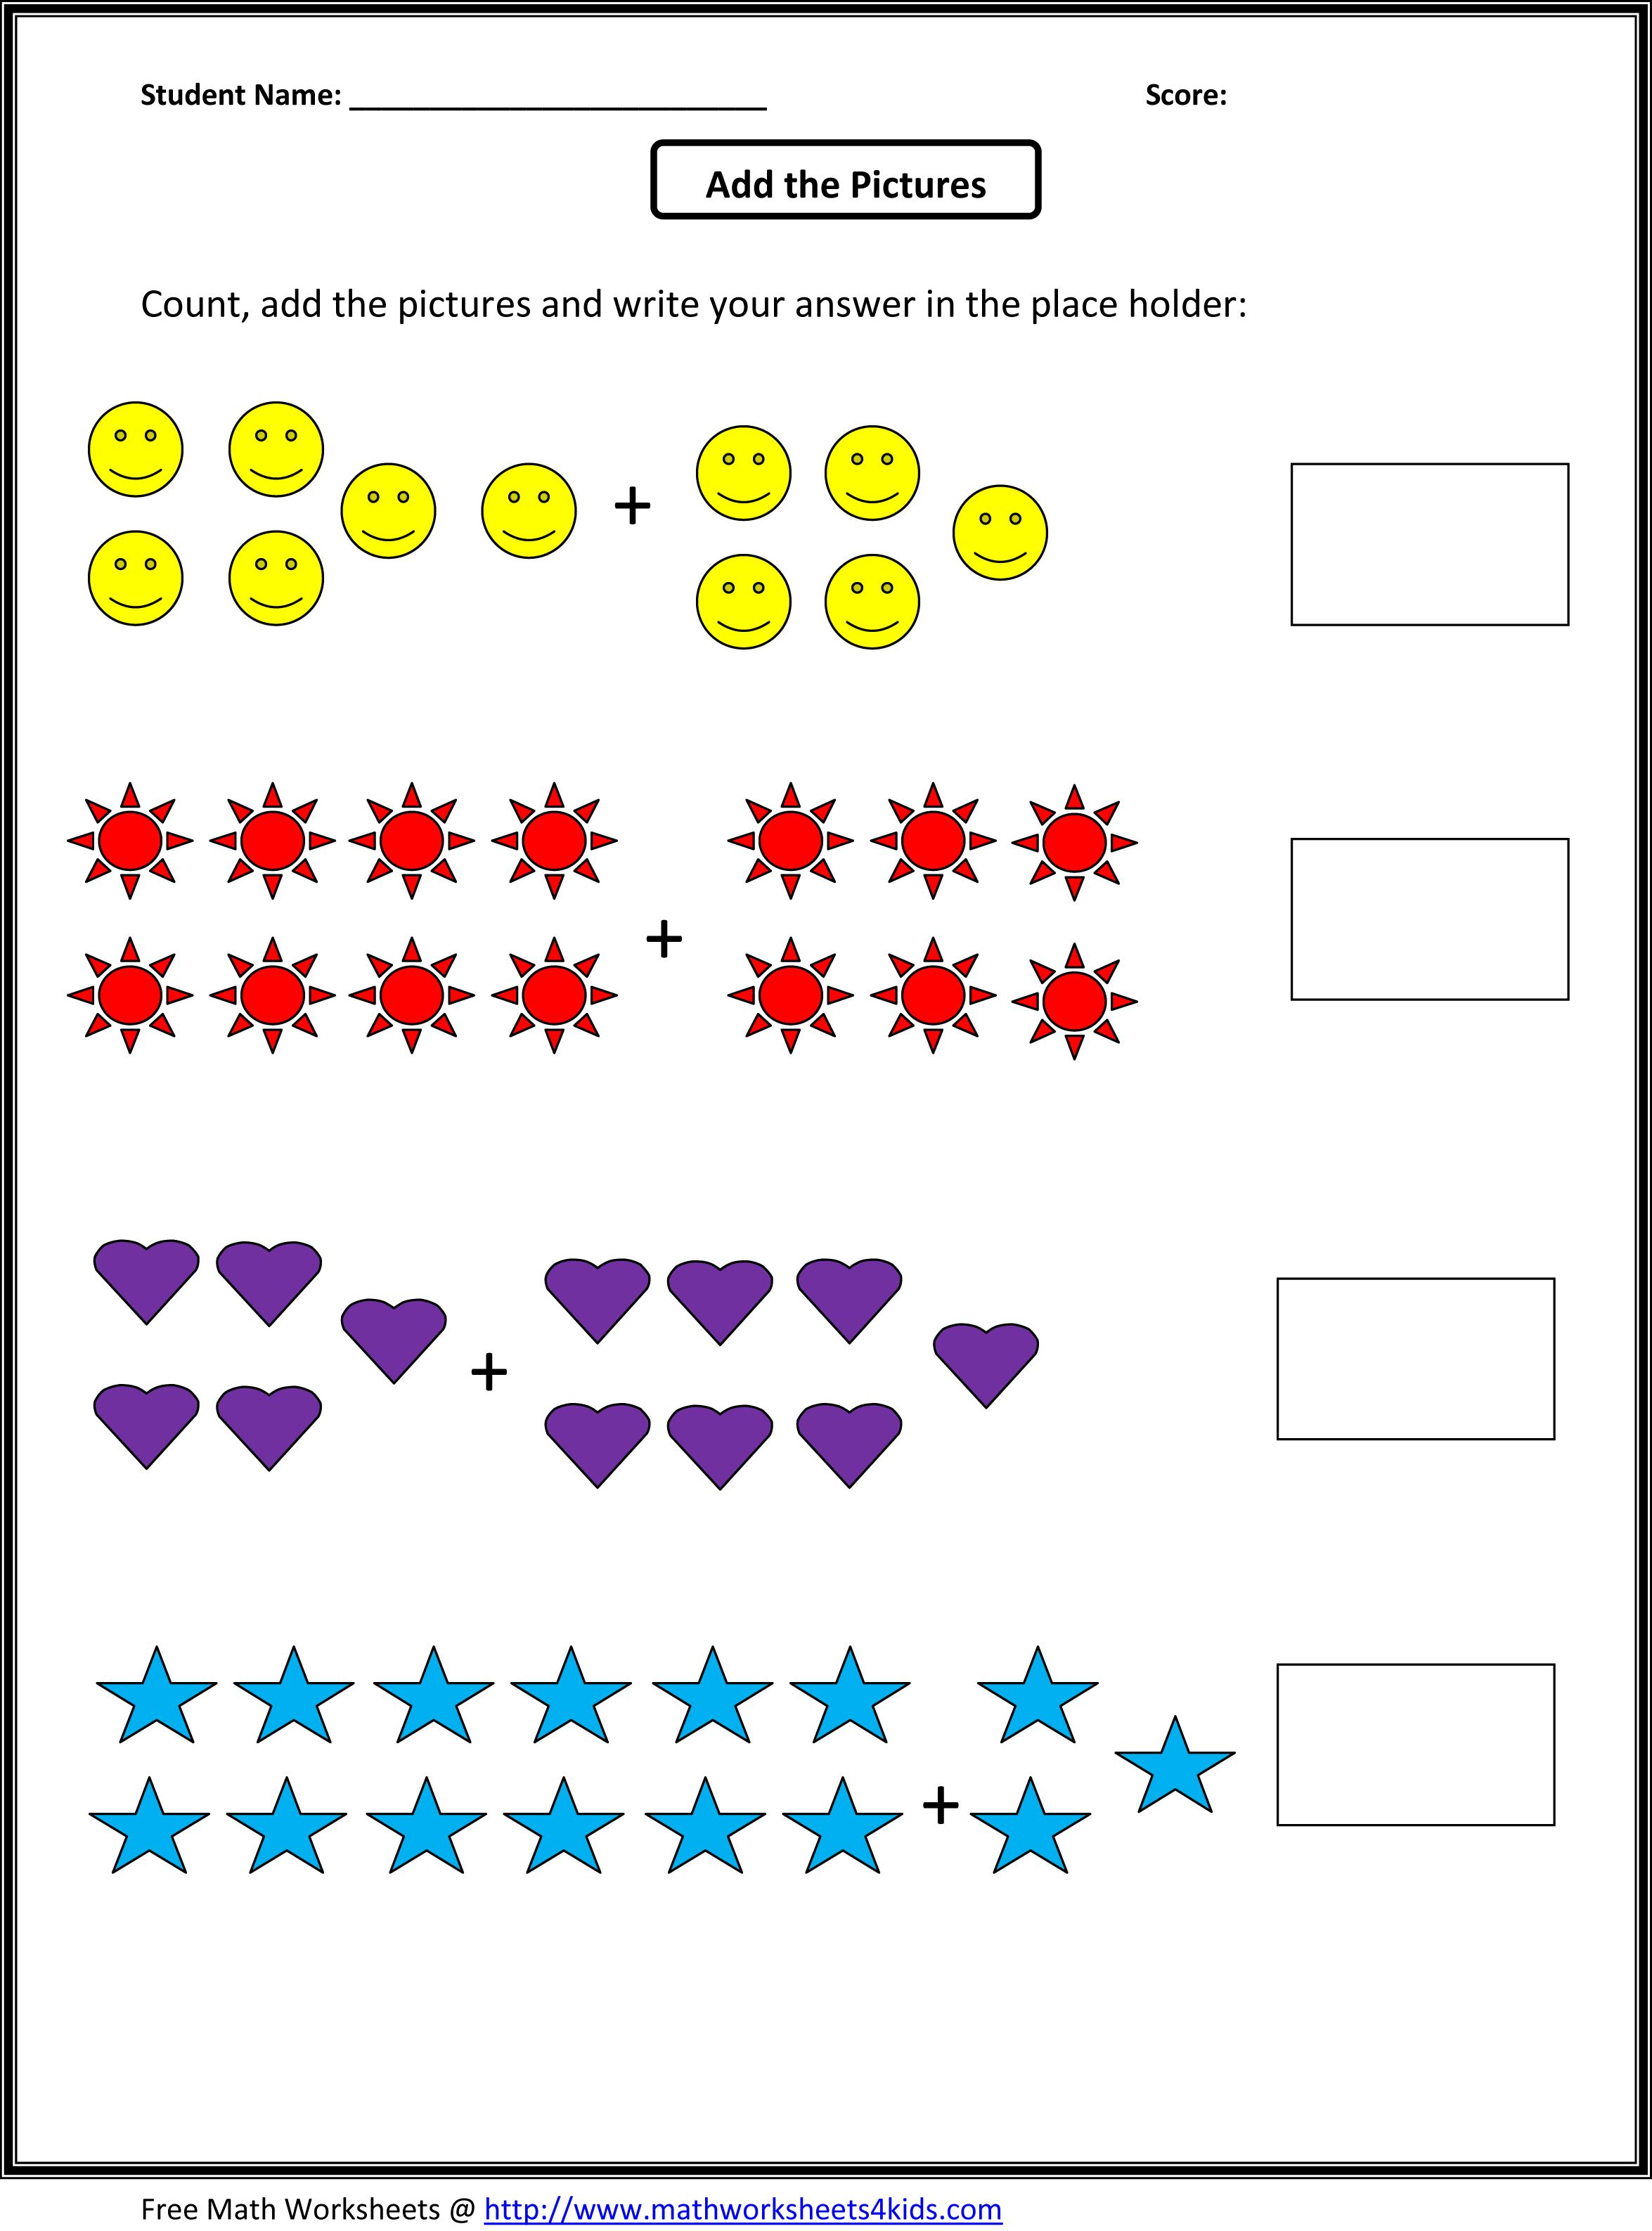 Worksheets Maths Sheos maths sheets year 1 laptuoso 1000 images about school on pinterest mental worksheets